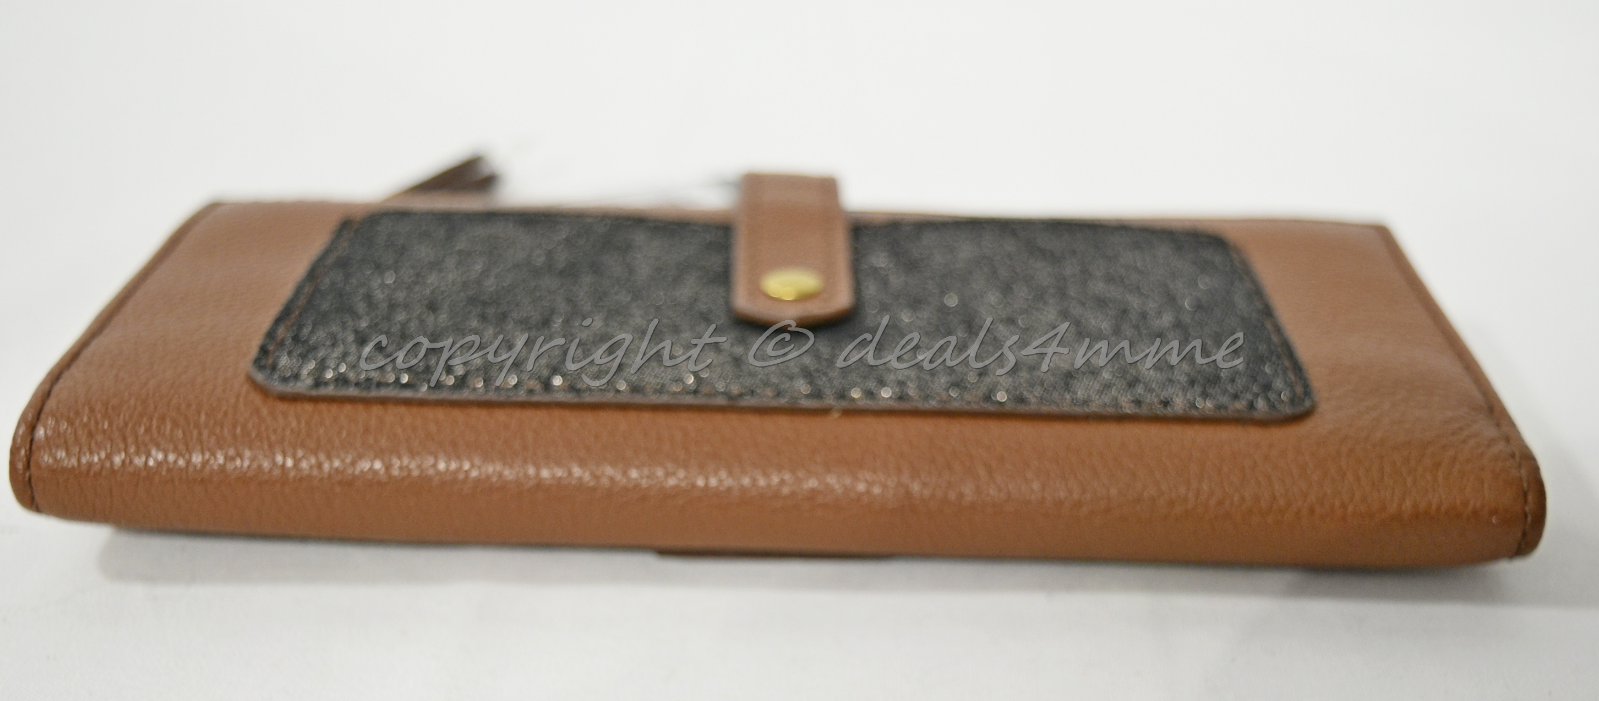 NWT! Fossil Keely Tab Clutch Wallet in Brown Multi